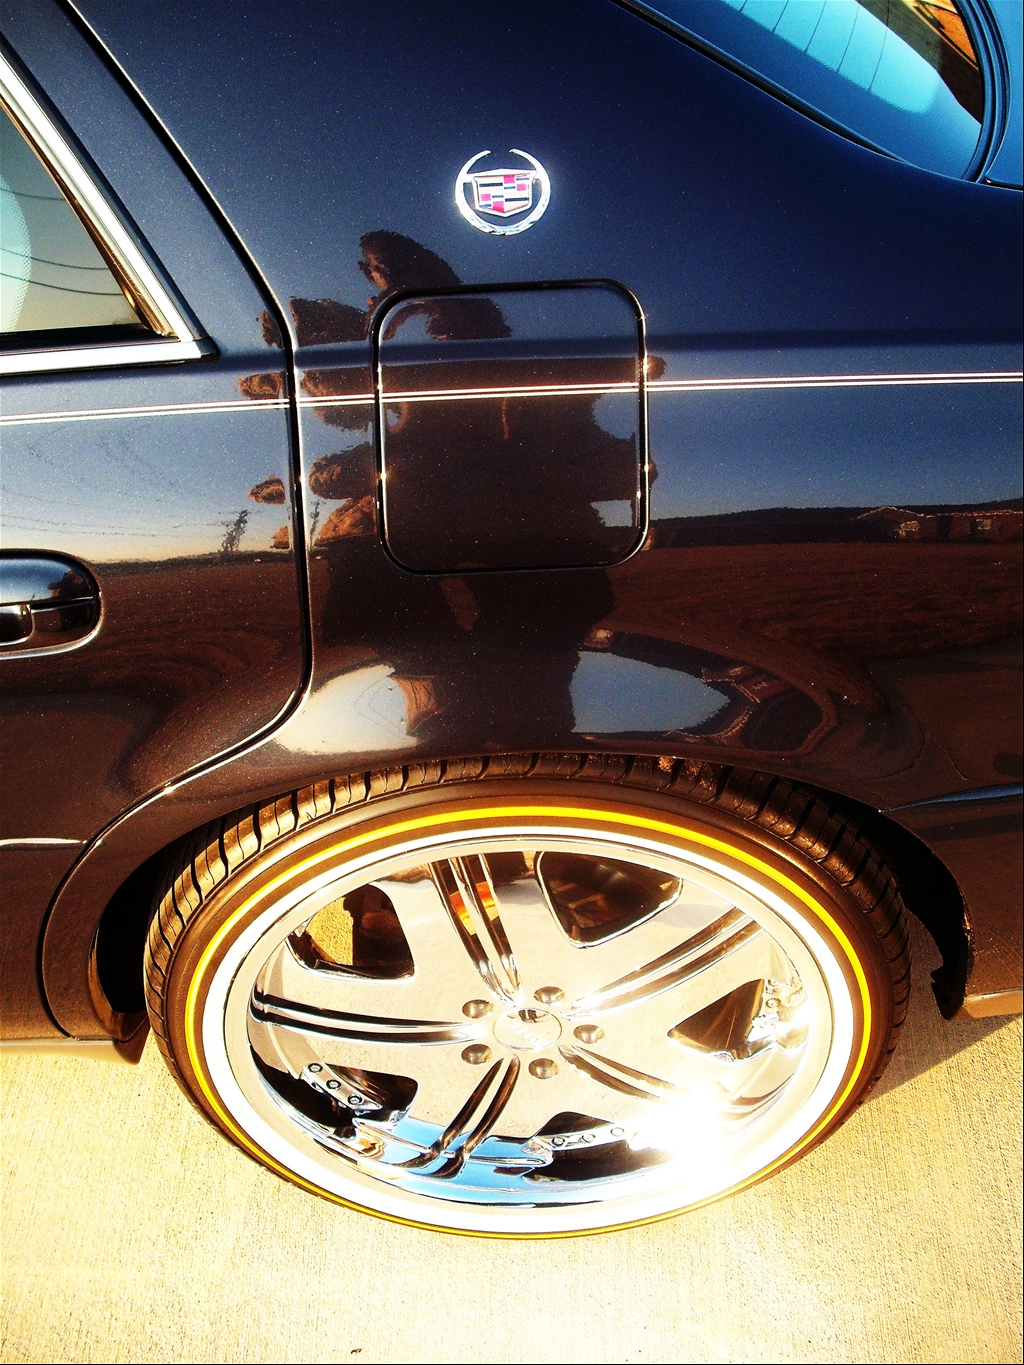 20 Inch Rims 20 Inch Rims Vogue Tires